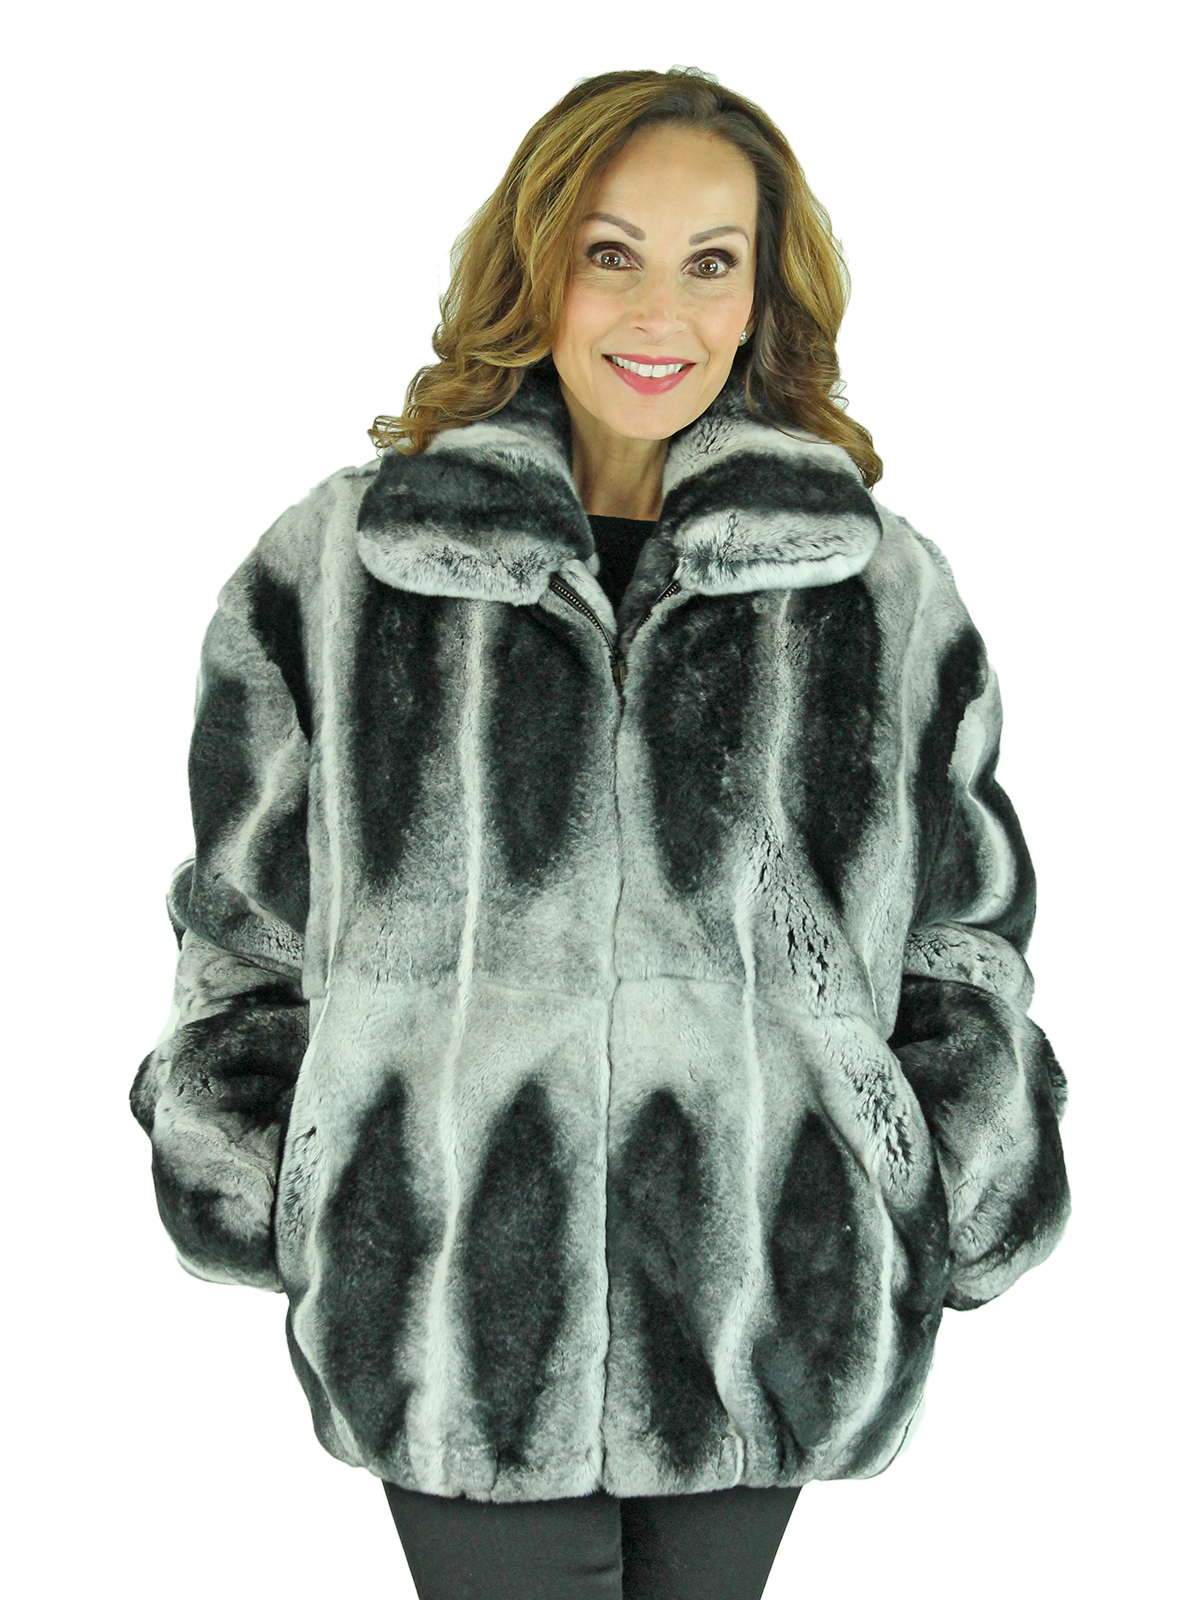 Woman's Chinchilla Dyed Rex Rabbit Fur Jacket